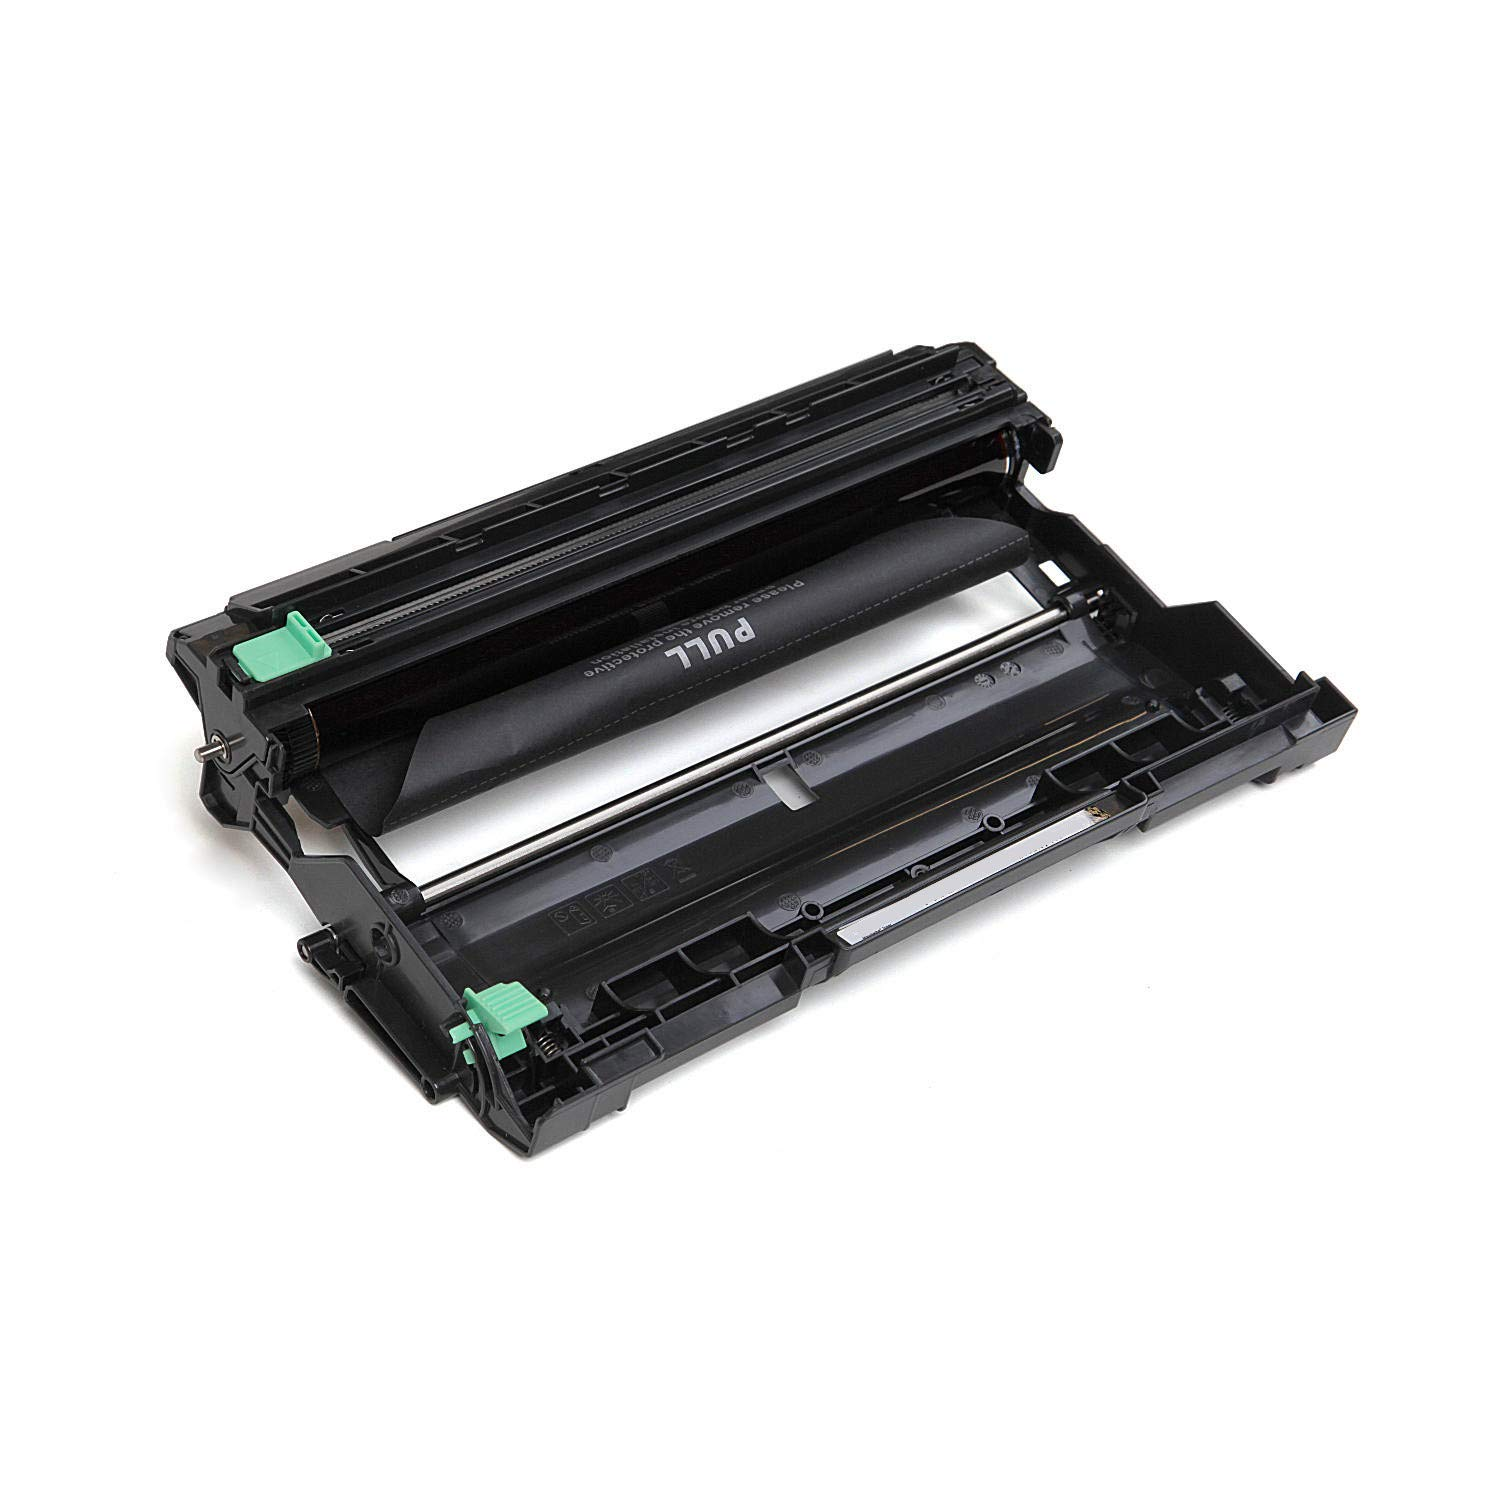 Save on Many Compatible Brother TN760 TN-760 tn760 - WITH CHIP - Black High Yield of TN730 TN-730 New Toner Cartridge for DCP-L2550DW HL-L2350DW HL-L2370DW HL-L2370DWXL HL-L2390DW HL-L2395DW MFC-L2710DW MFC-L2730DW MFC-L2750DW MFC-L2750DWXL SaveOnMany